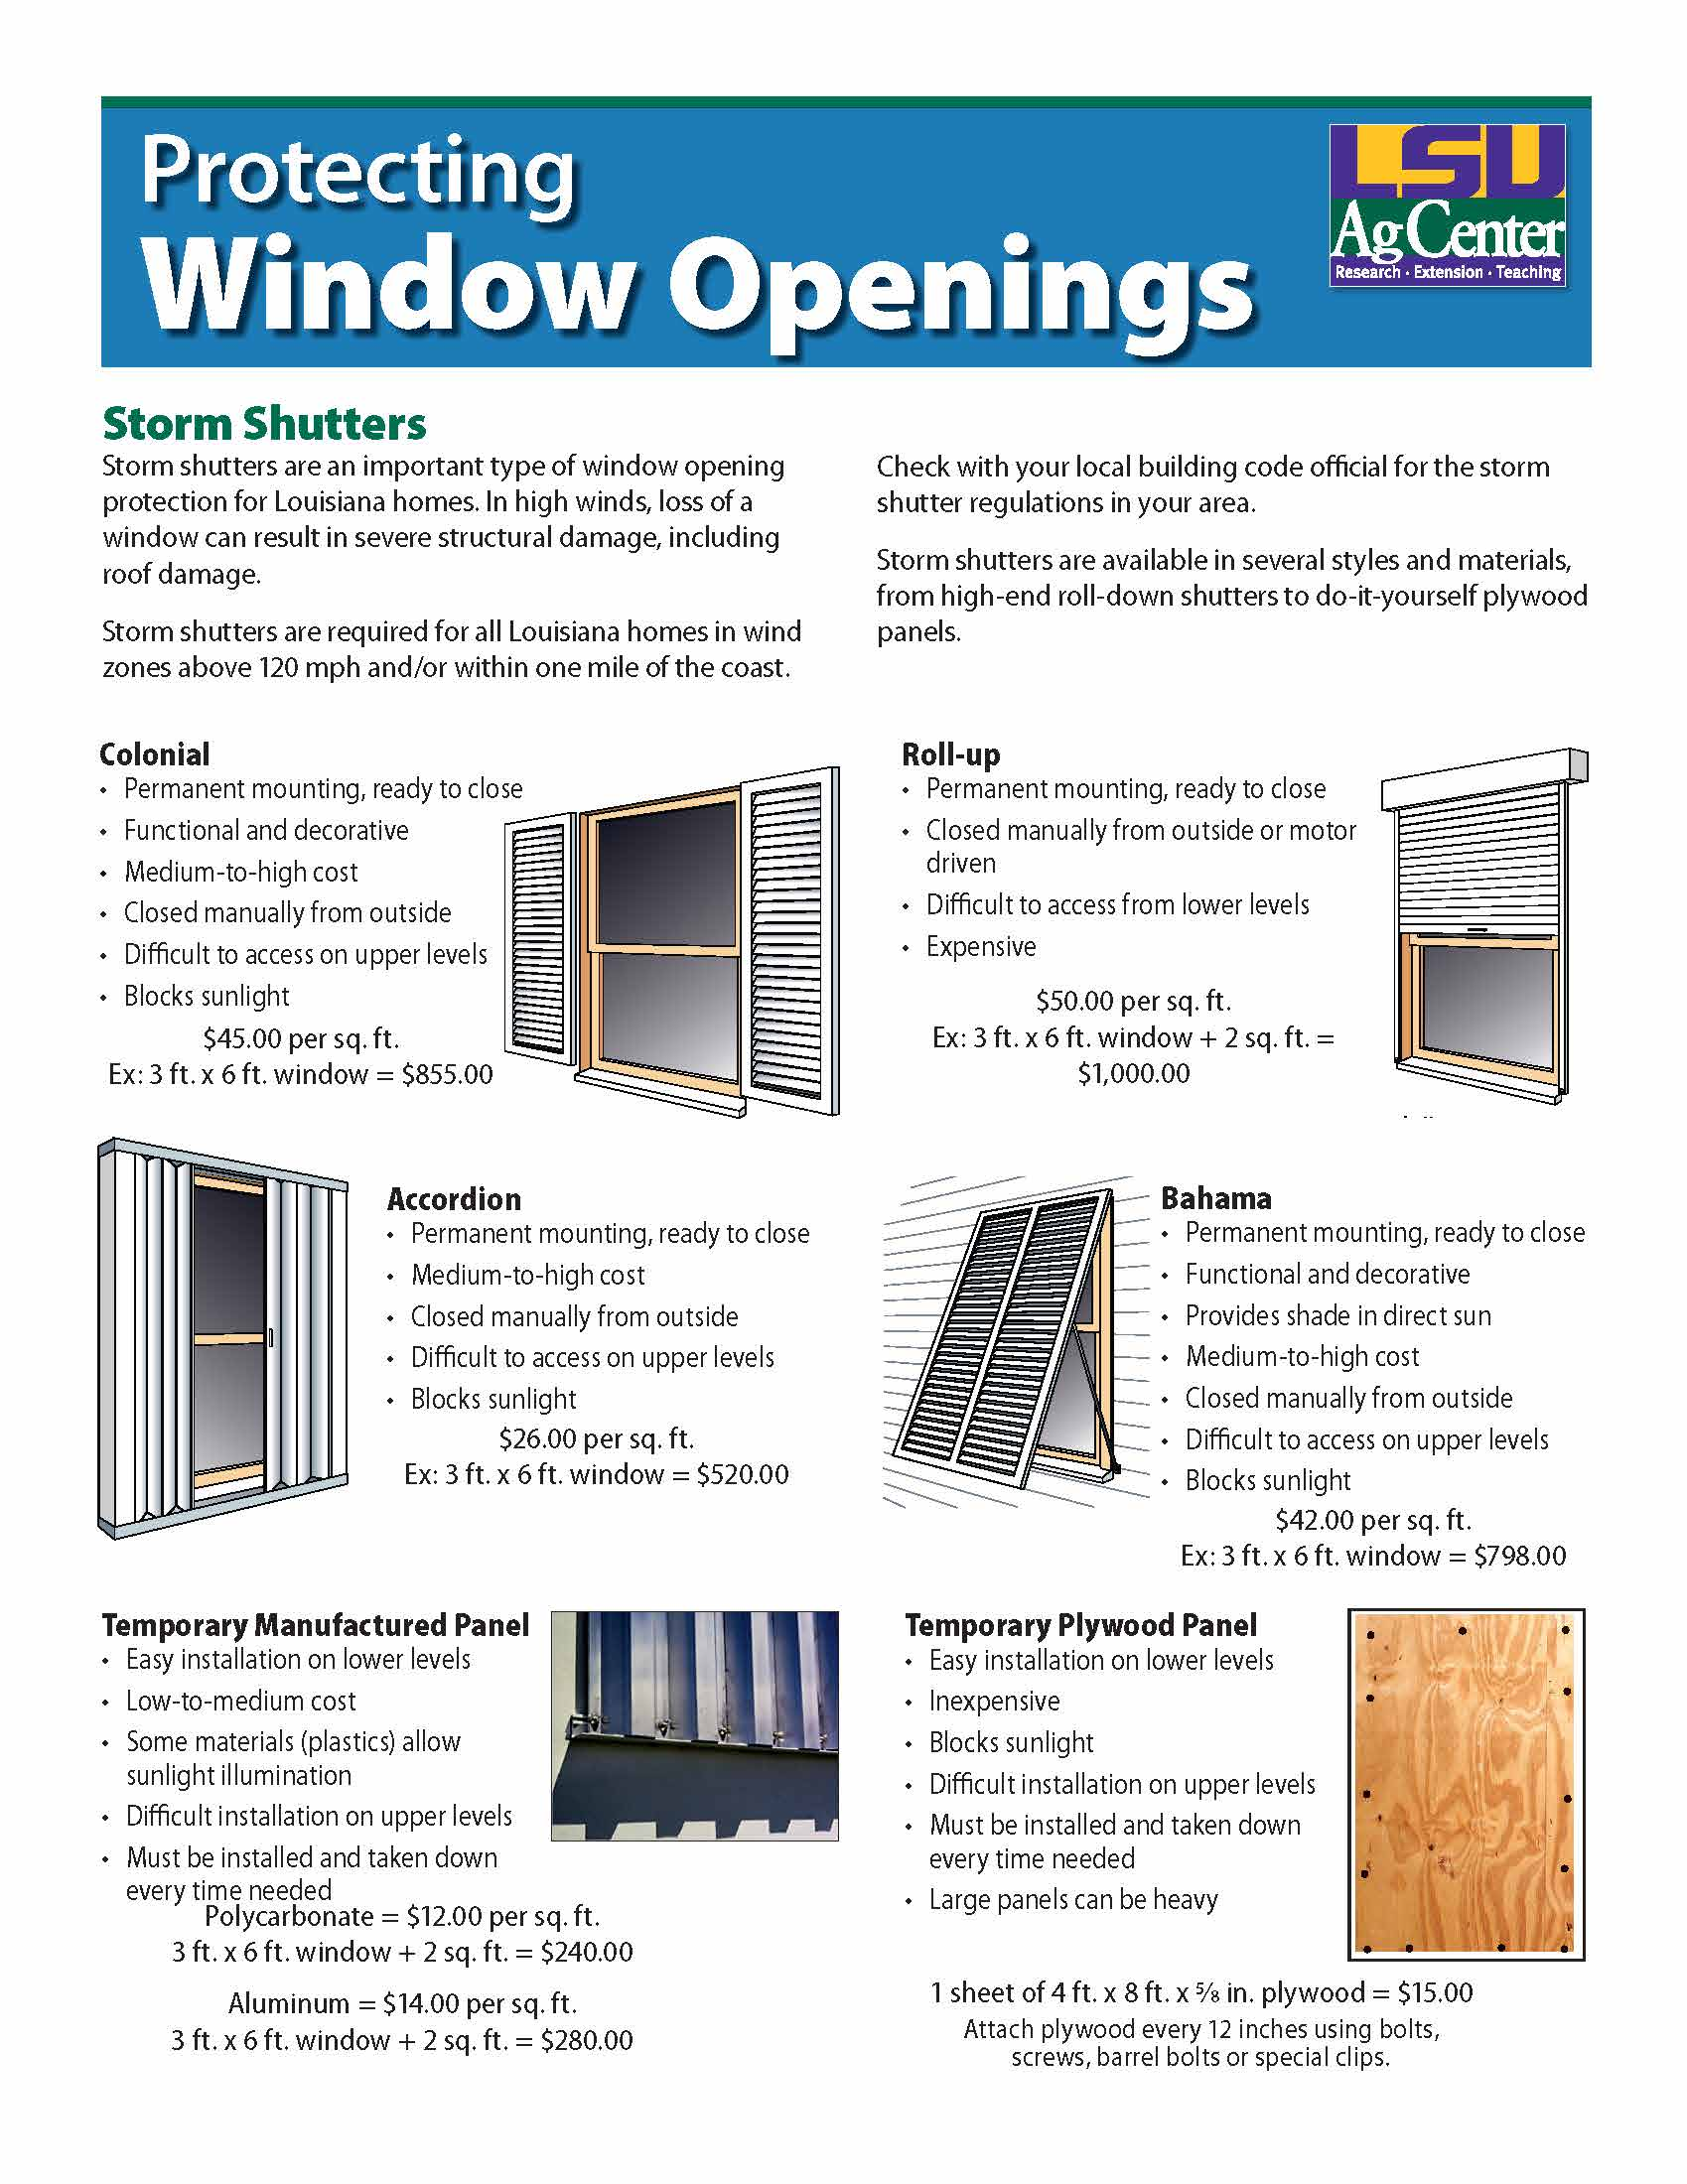 Protecting Window Openings